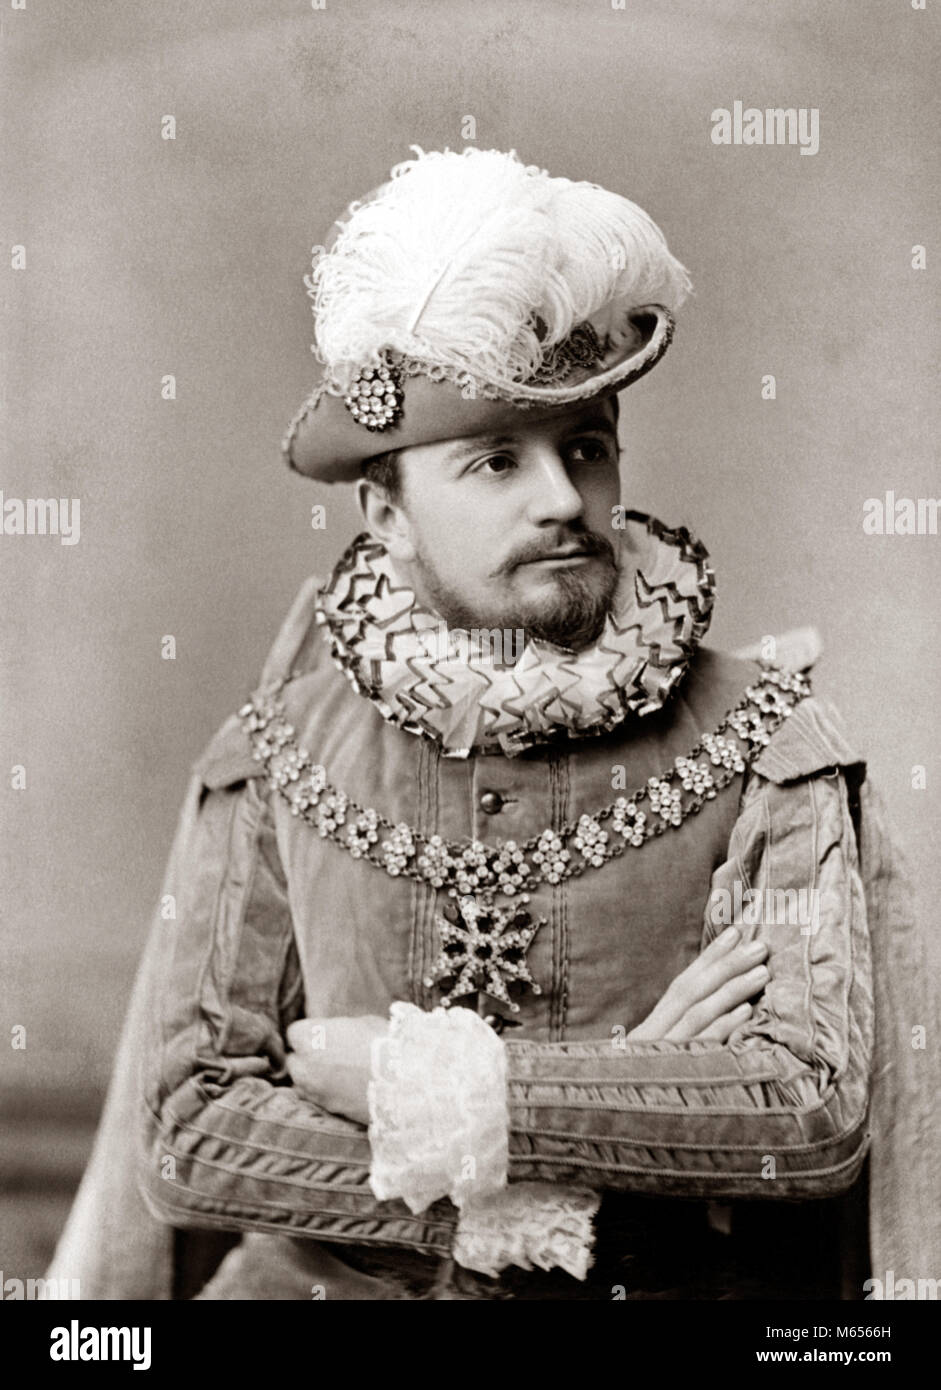 1890s MAN ACTOR IN ELIZABETHAN FASHION COSTUME RUFFLED COLLAR & CUFFS VELVET TUNIC HAT WITH LARGE FEATHER PLUME - Stock Image